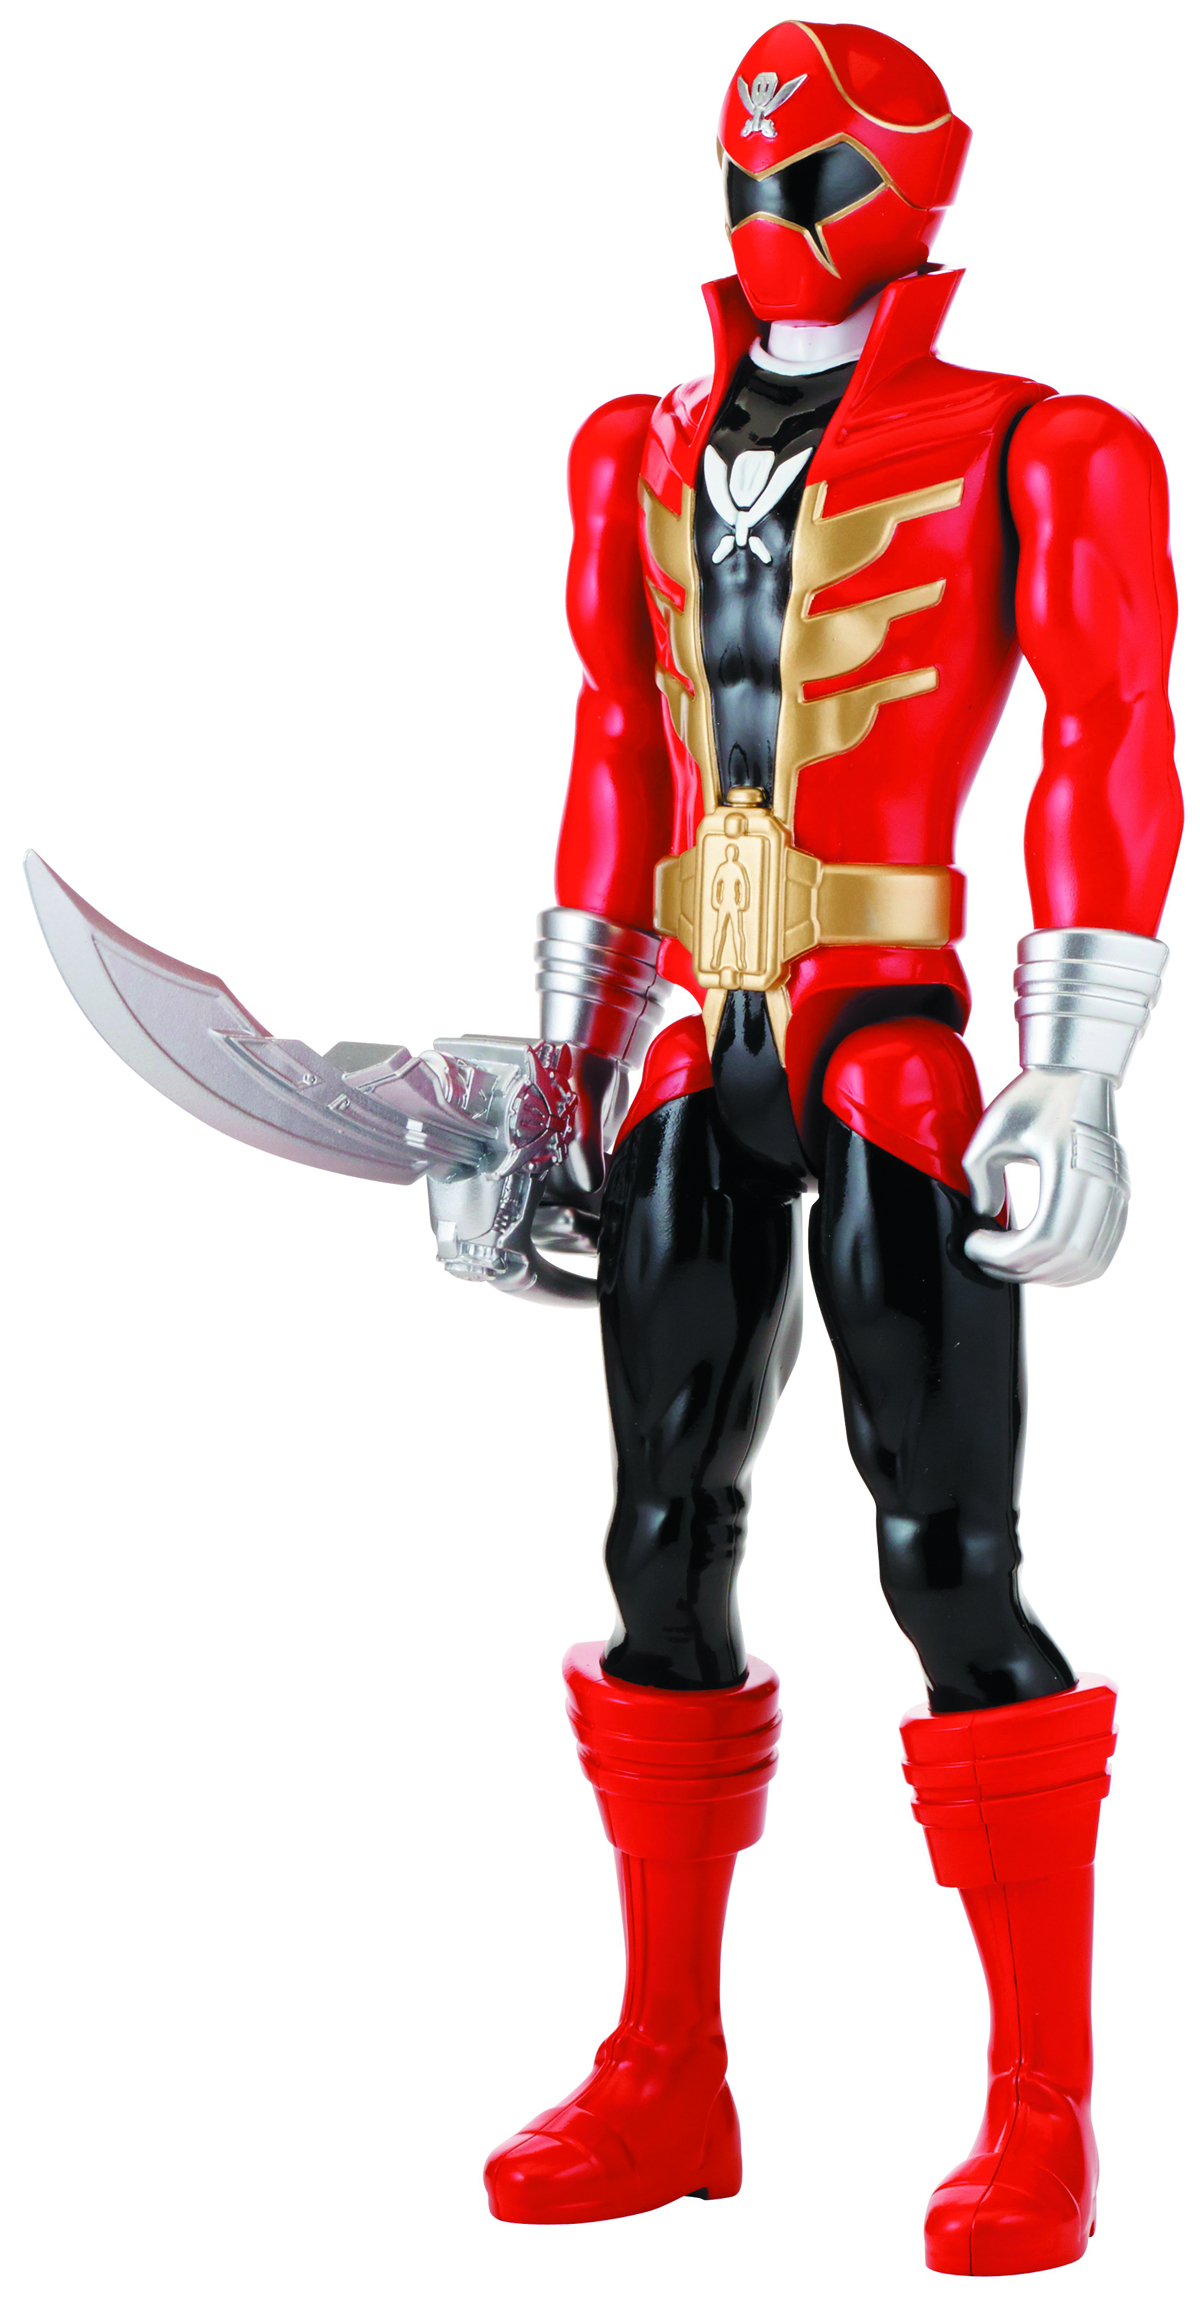 POWER RANGERS SUPER MEGAFORCE 12IN AF ASST